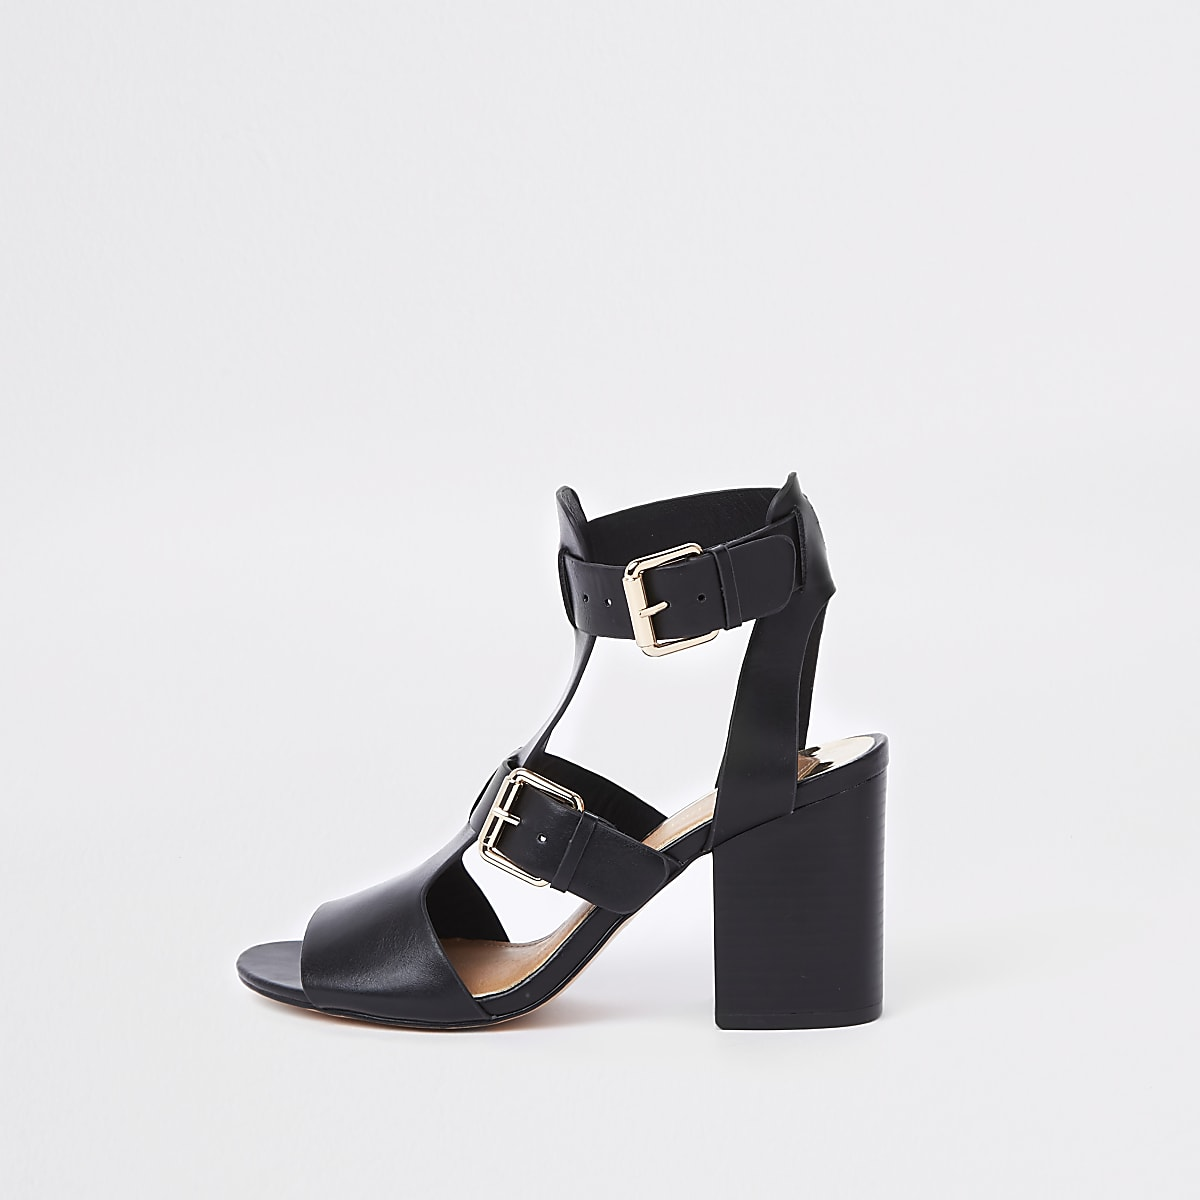 Black double buckle heels